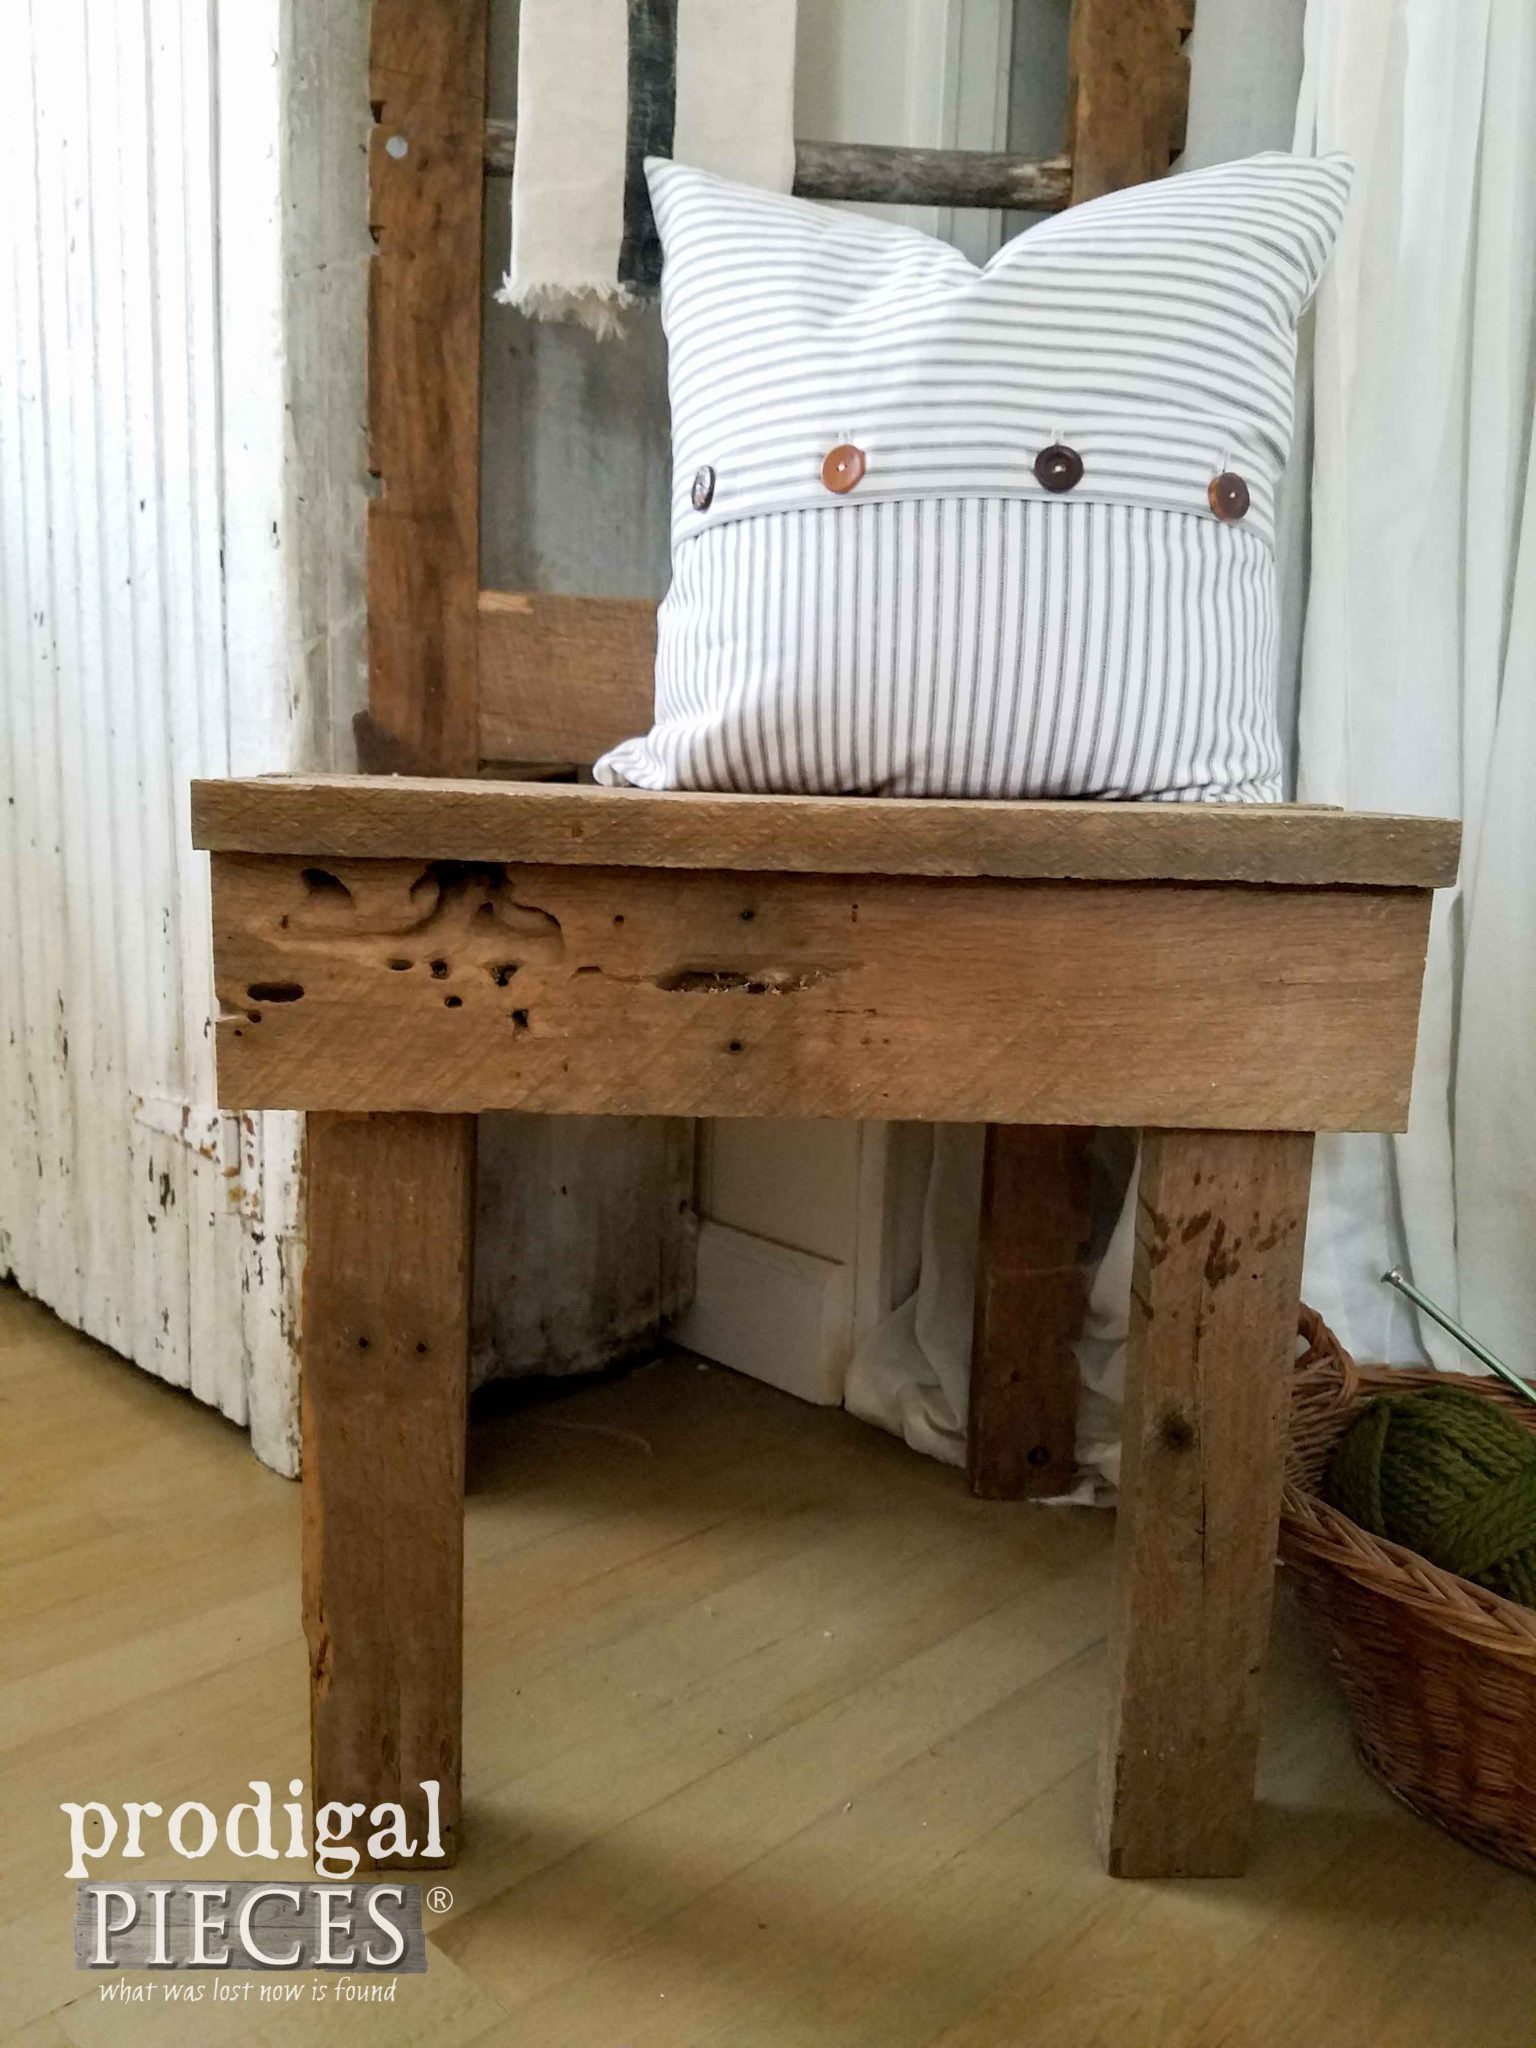 Chair Seat of Reclaimed Wood Creation by Prodigal Pieces | prodigalpieces.com